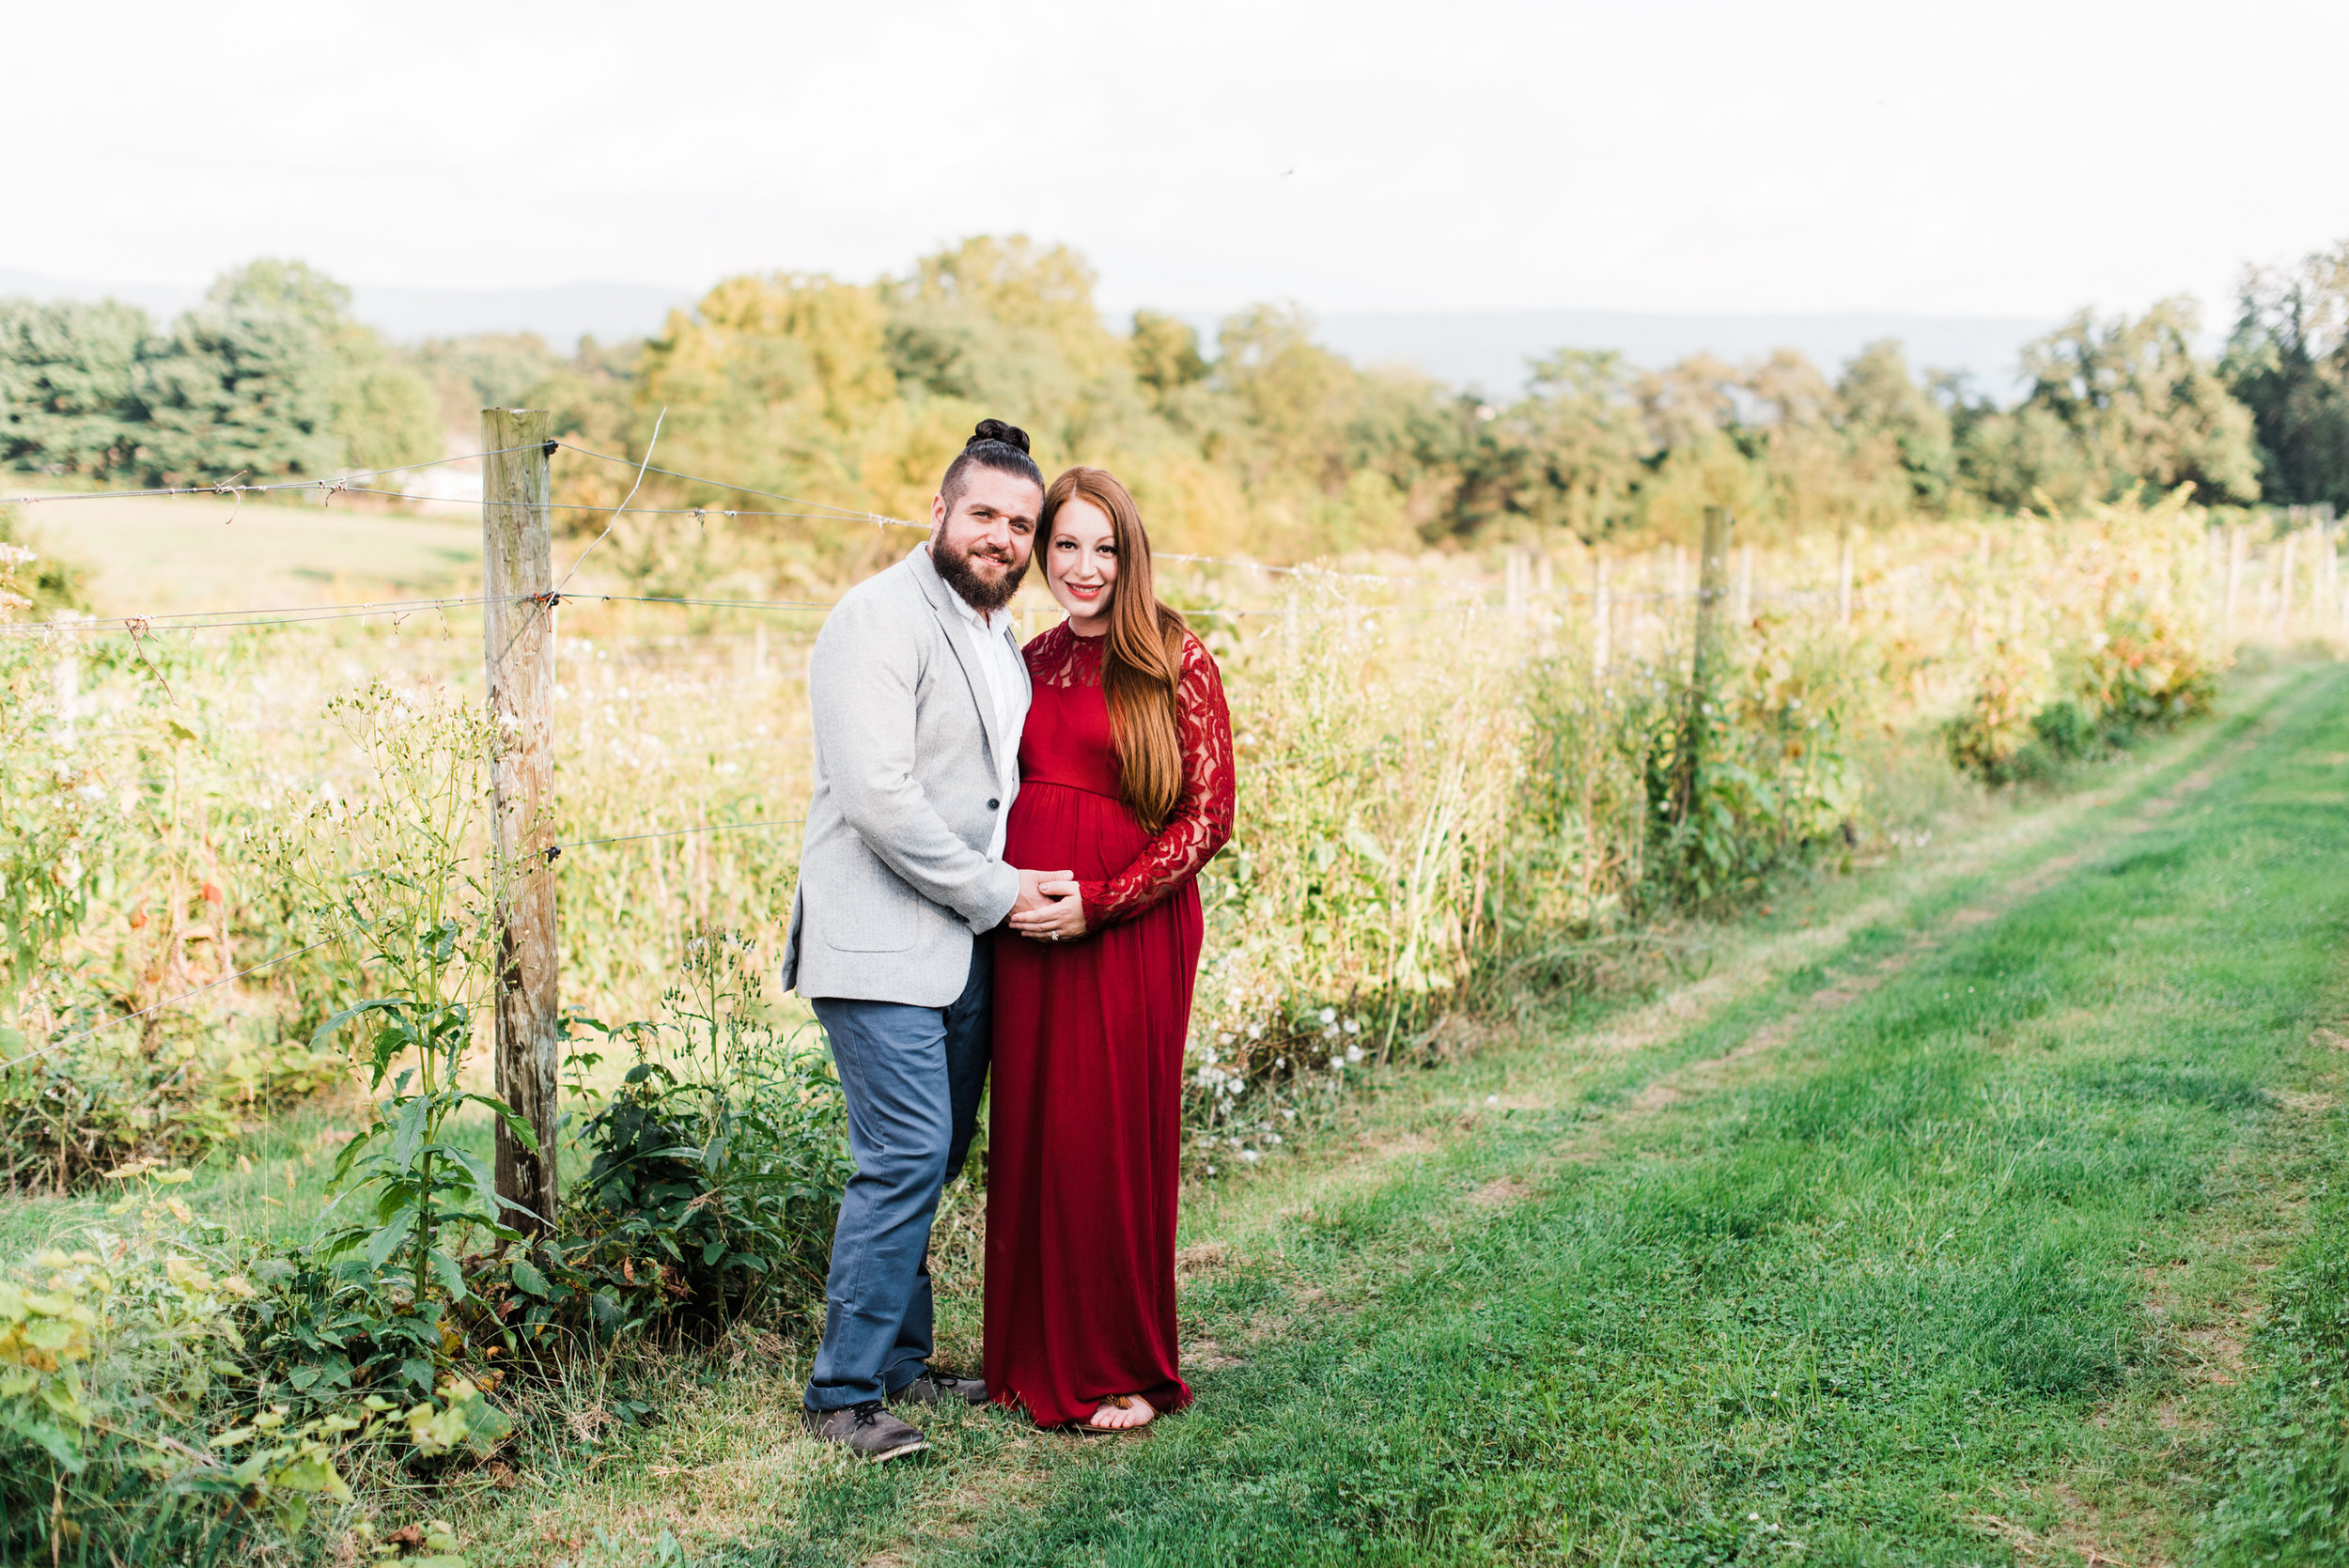 pittsburgh-maternity-photographers-winery-apple-orchard-session_9.jpg